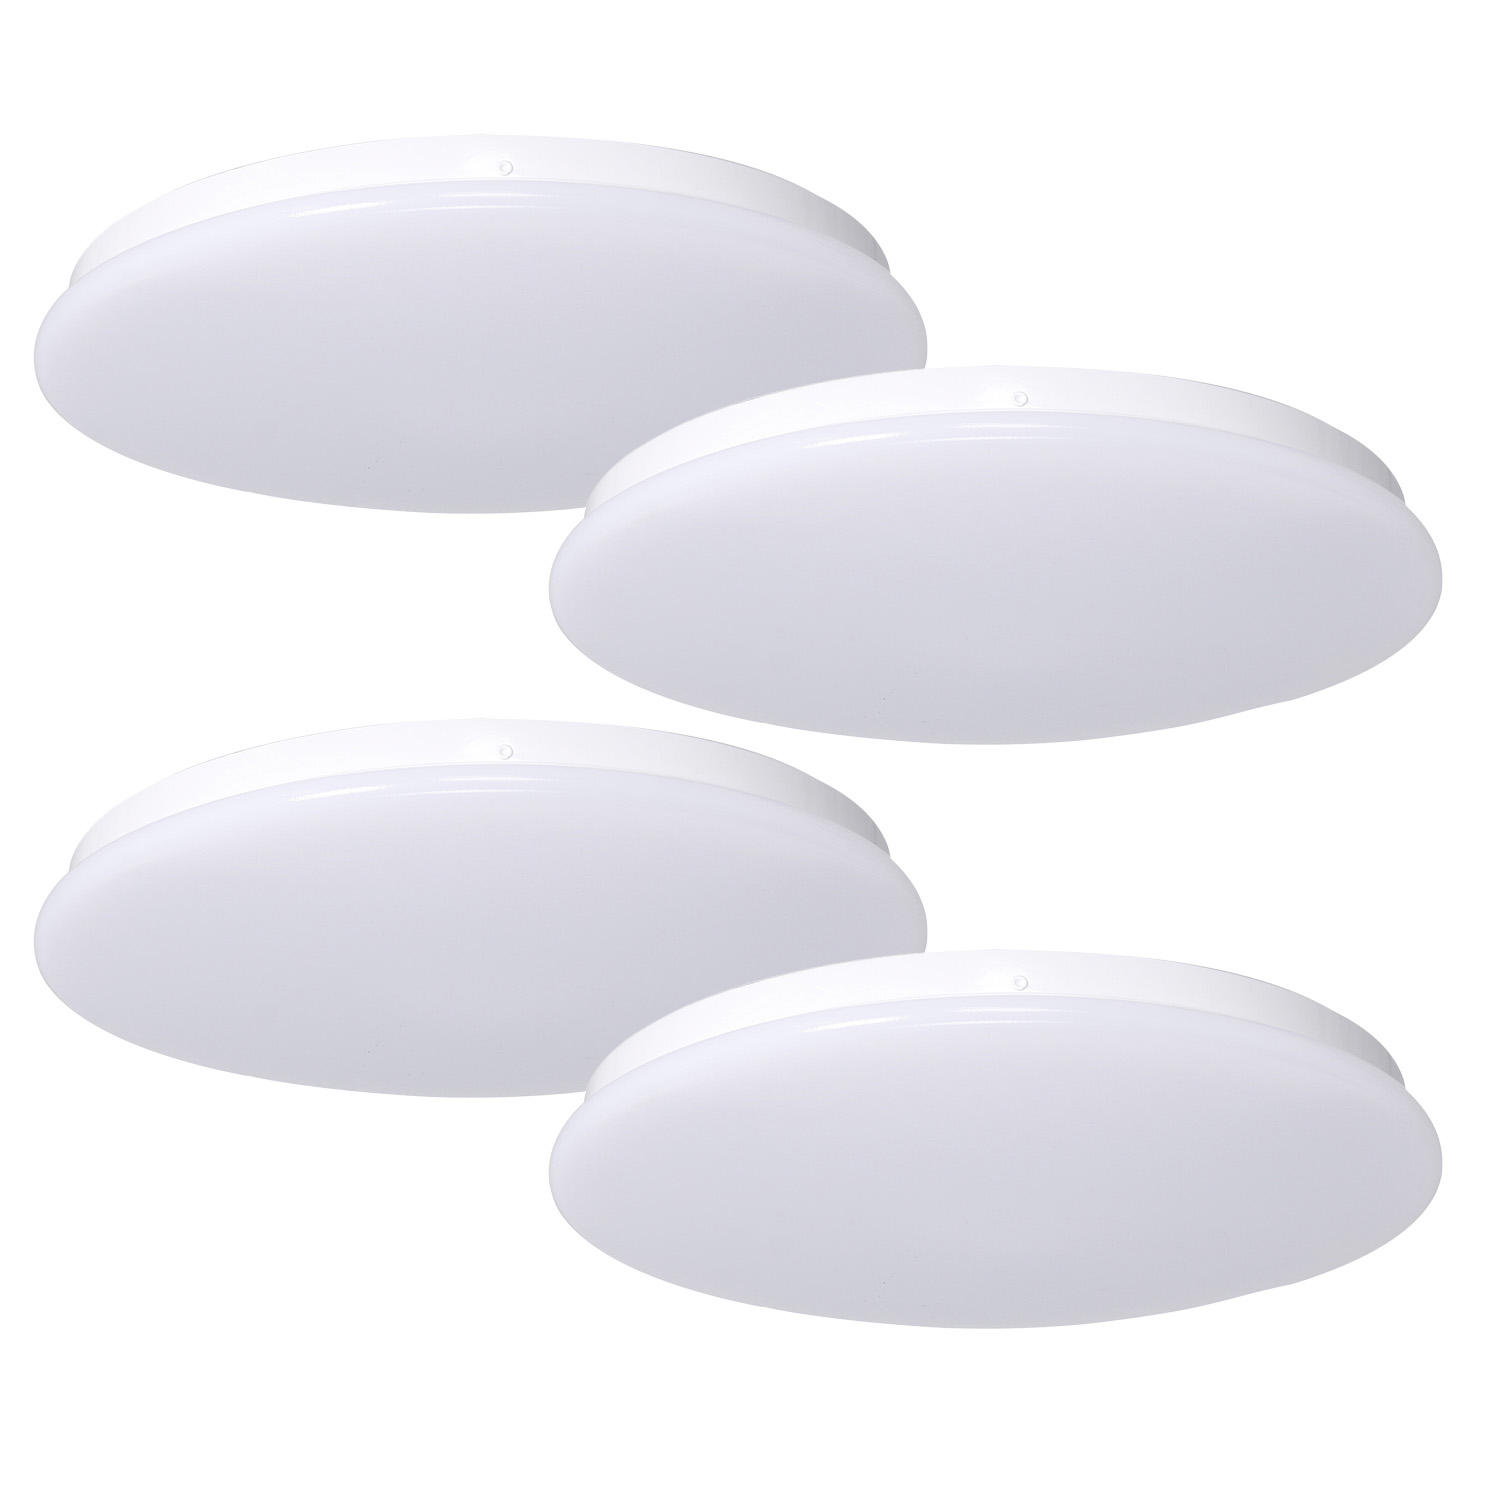 "4-Pack Honeywell 1500 Lumen Dimmable LED 15"" Round Ceiling Light"